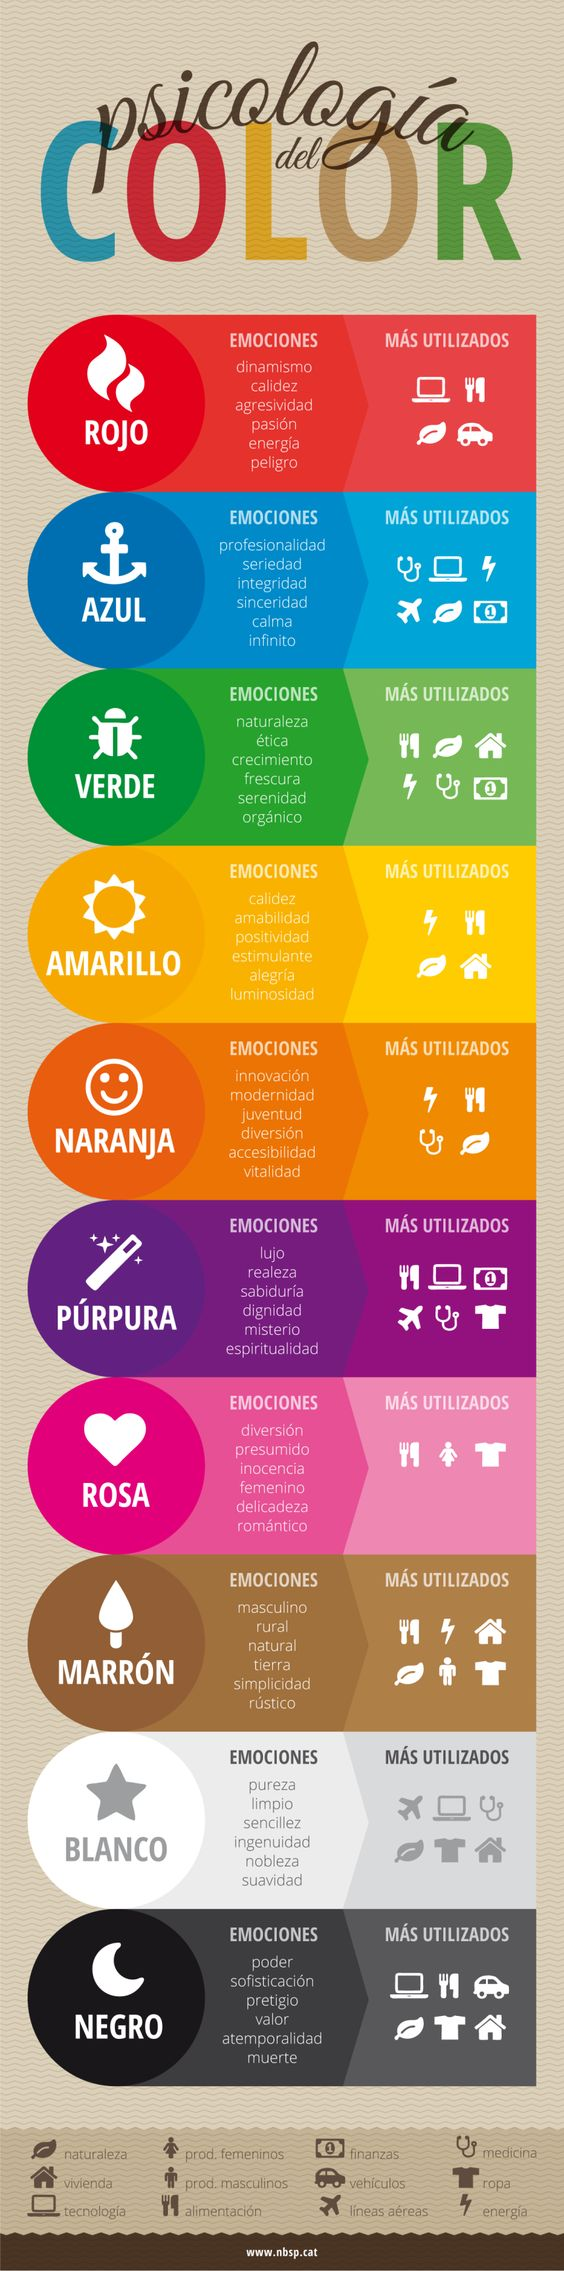 uso de colores para las emociones en marketing digital